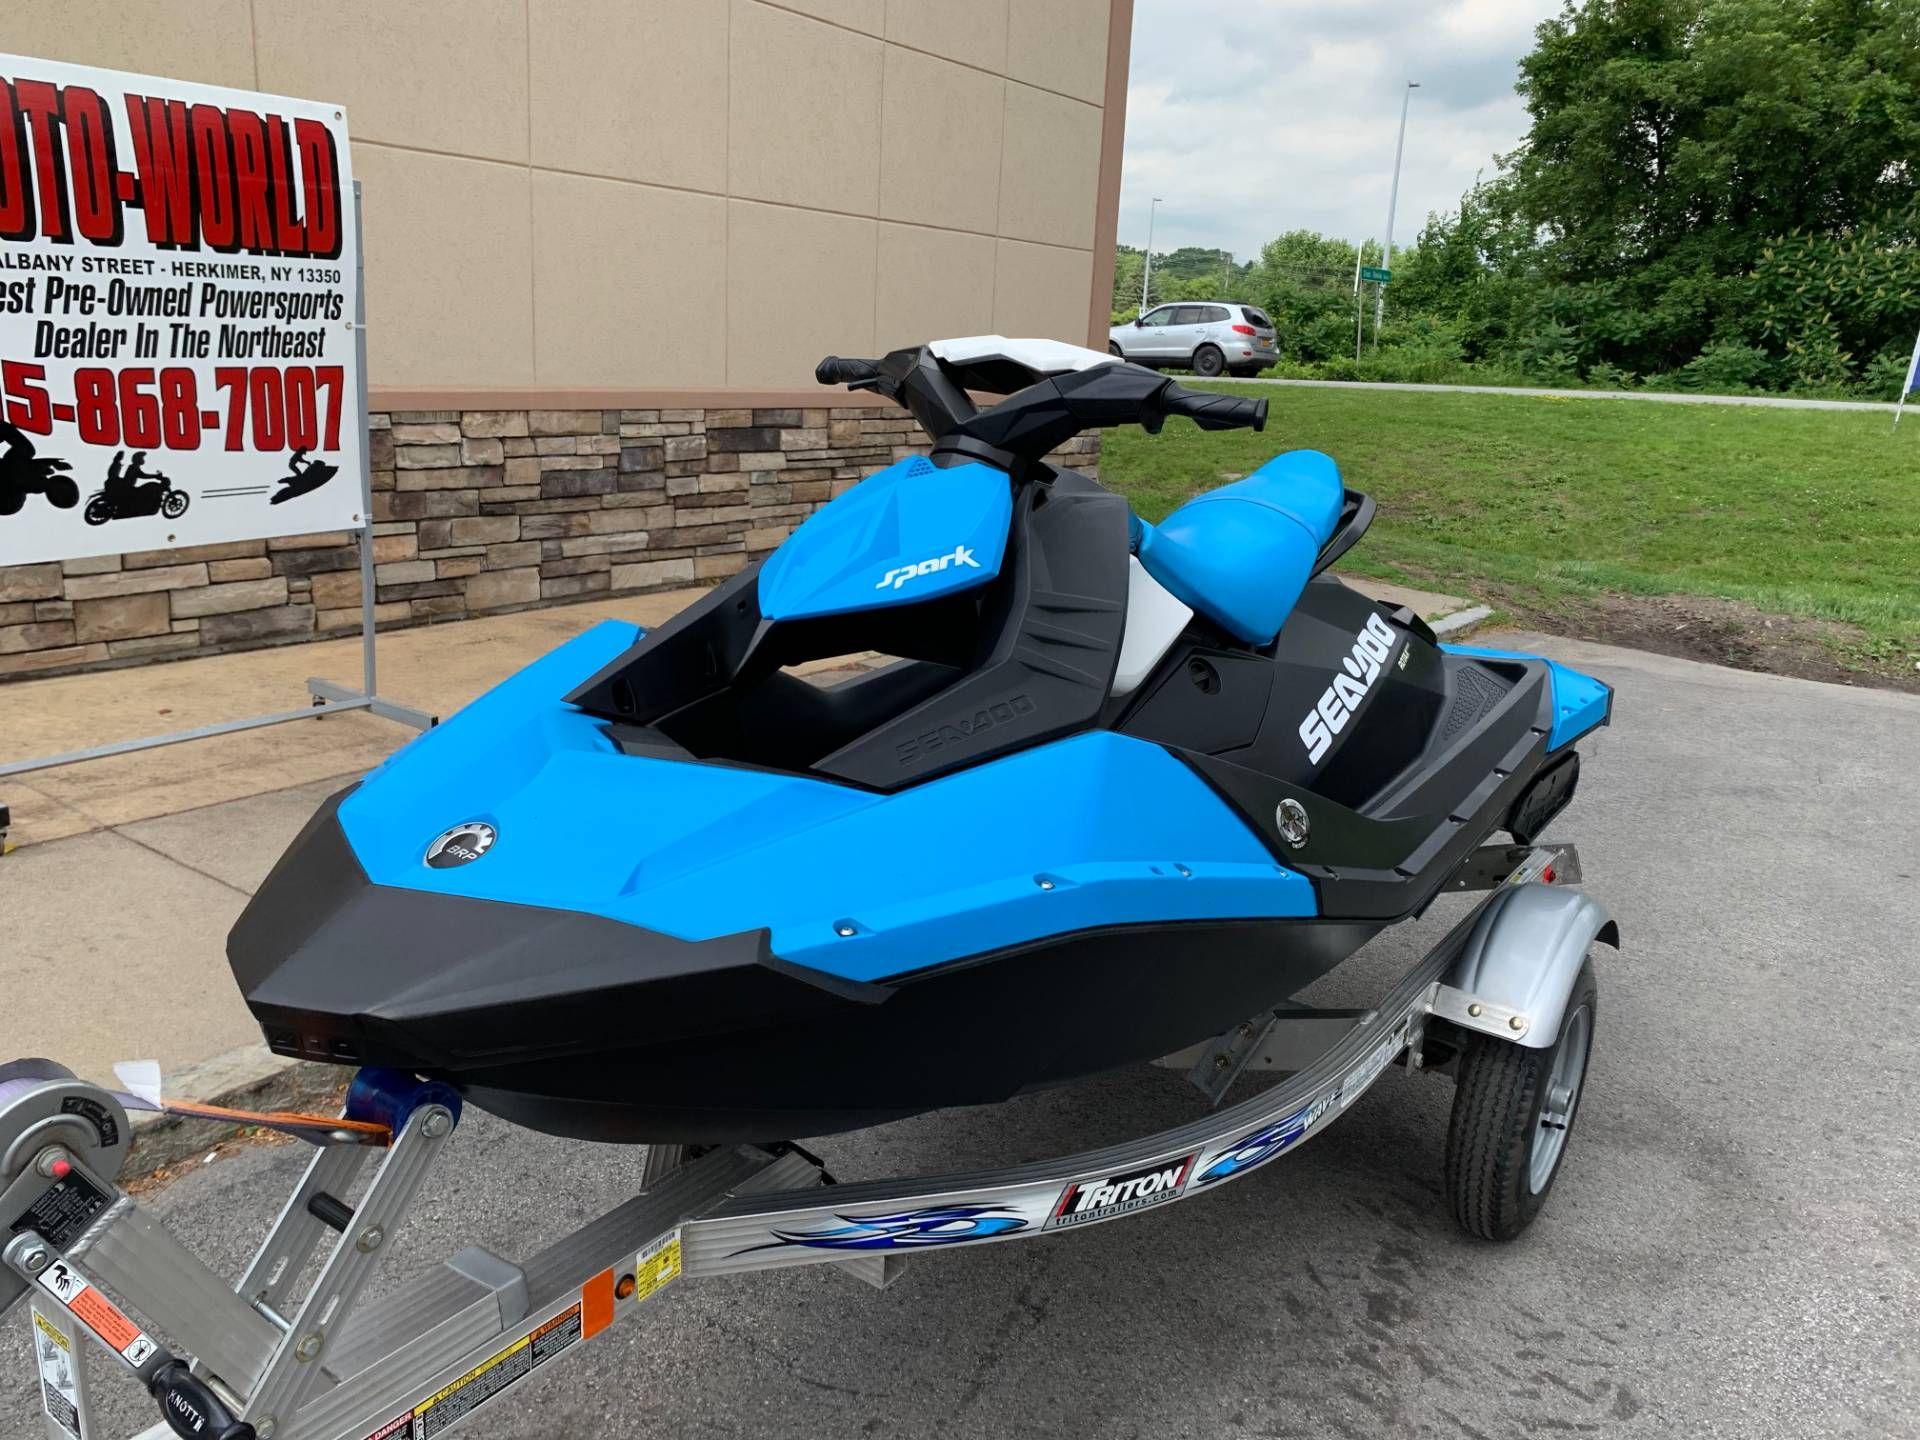 2016 Sea-Doo Spark 2up 900 ACE in Herkimer, New York - Photo 20